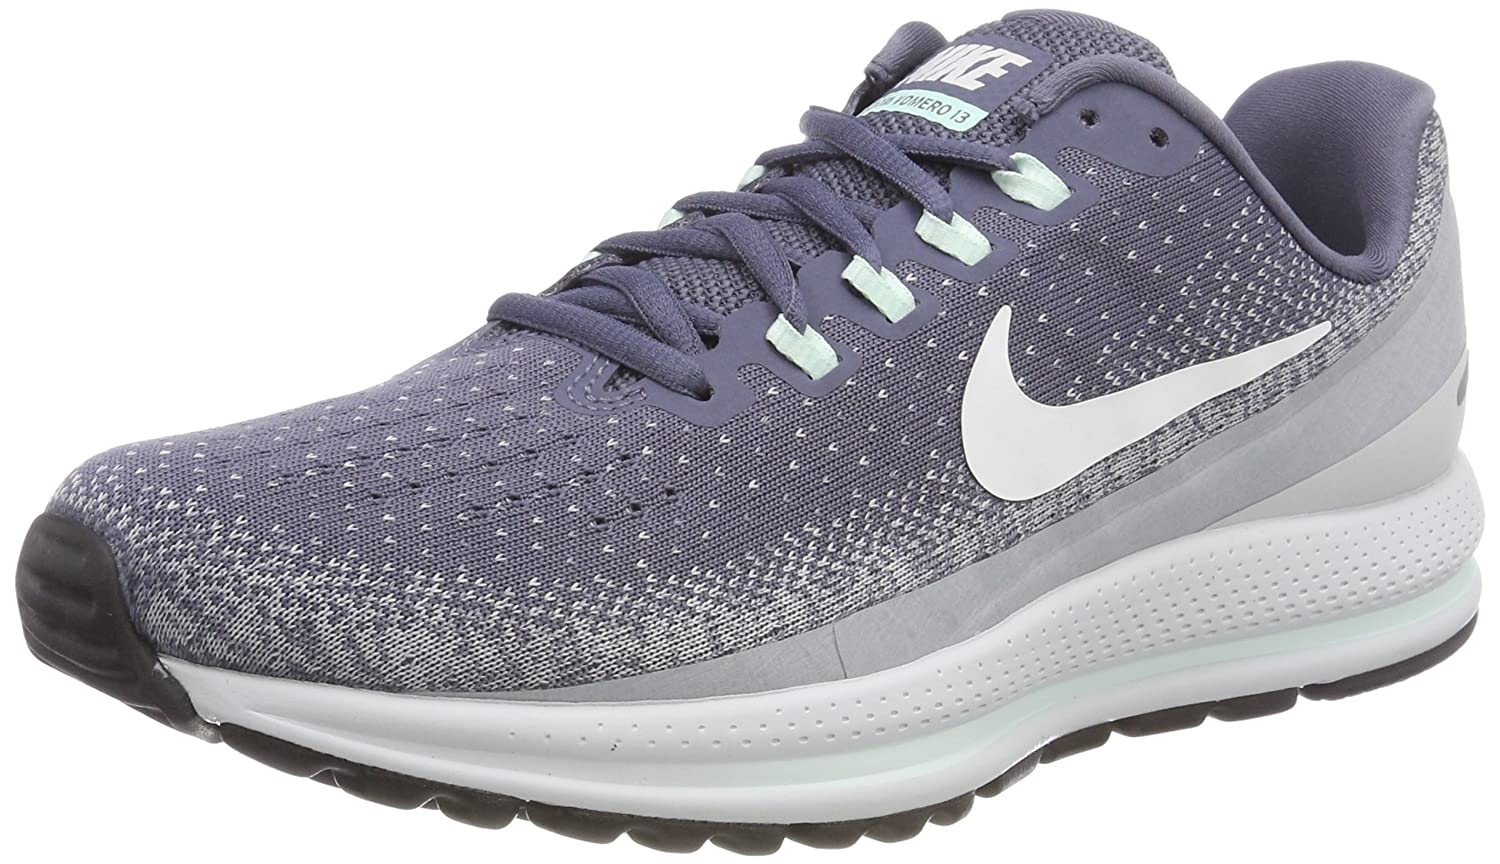 NIKE Women's Air Zoom Vomero 13 Running Shoe B078RX3VB2 7.5 B(M) US|Light Caron /Summit White-wolf Grey